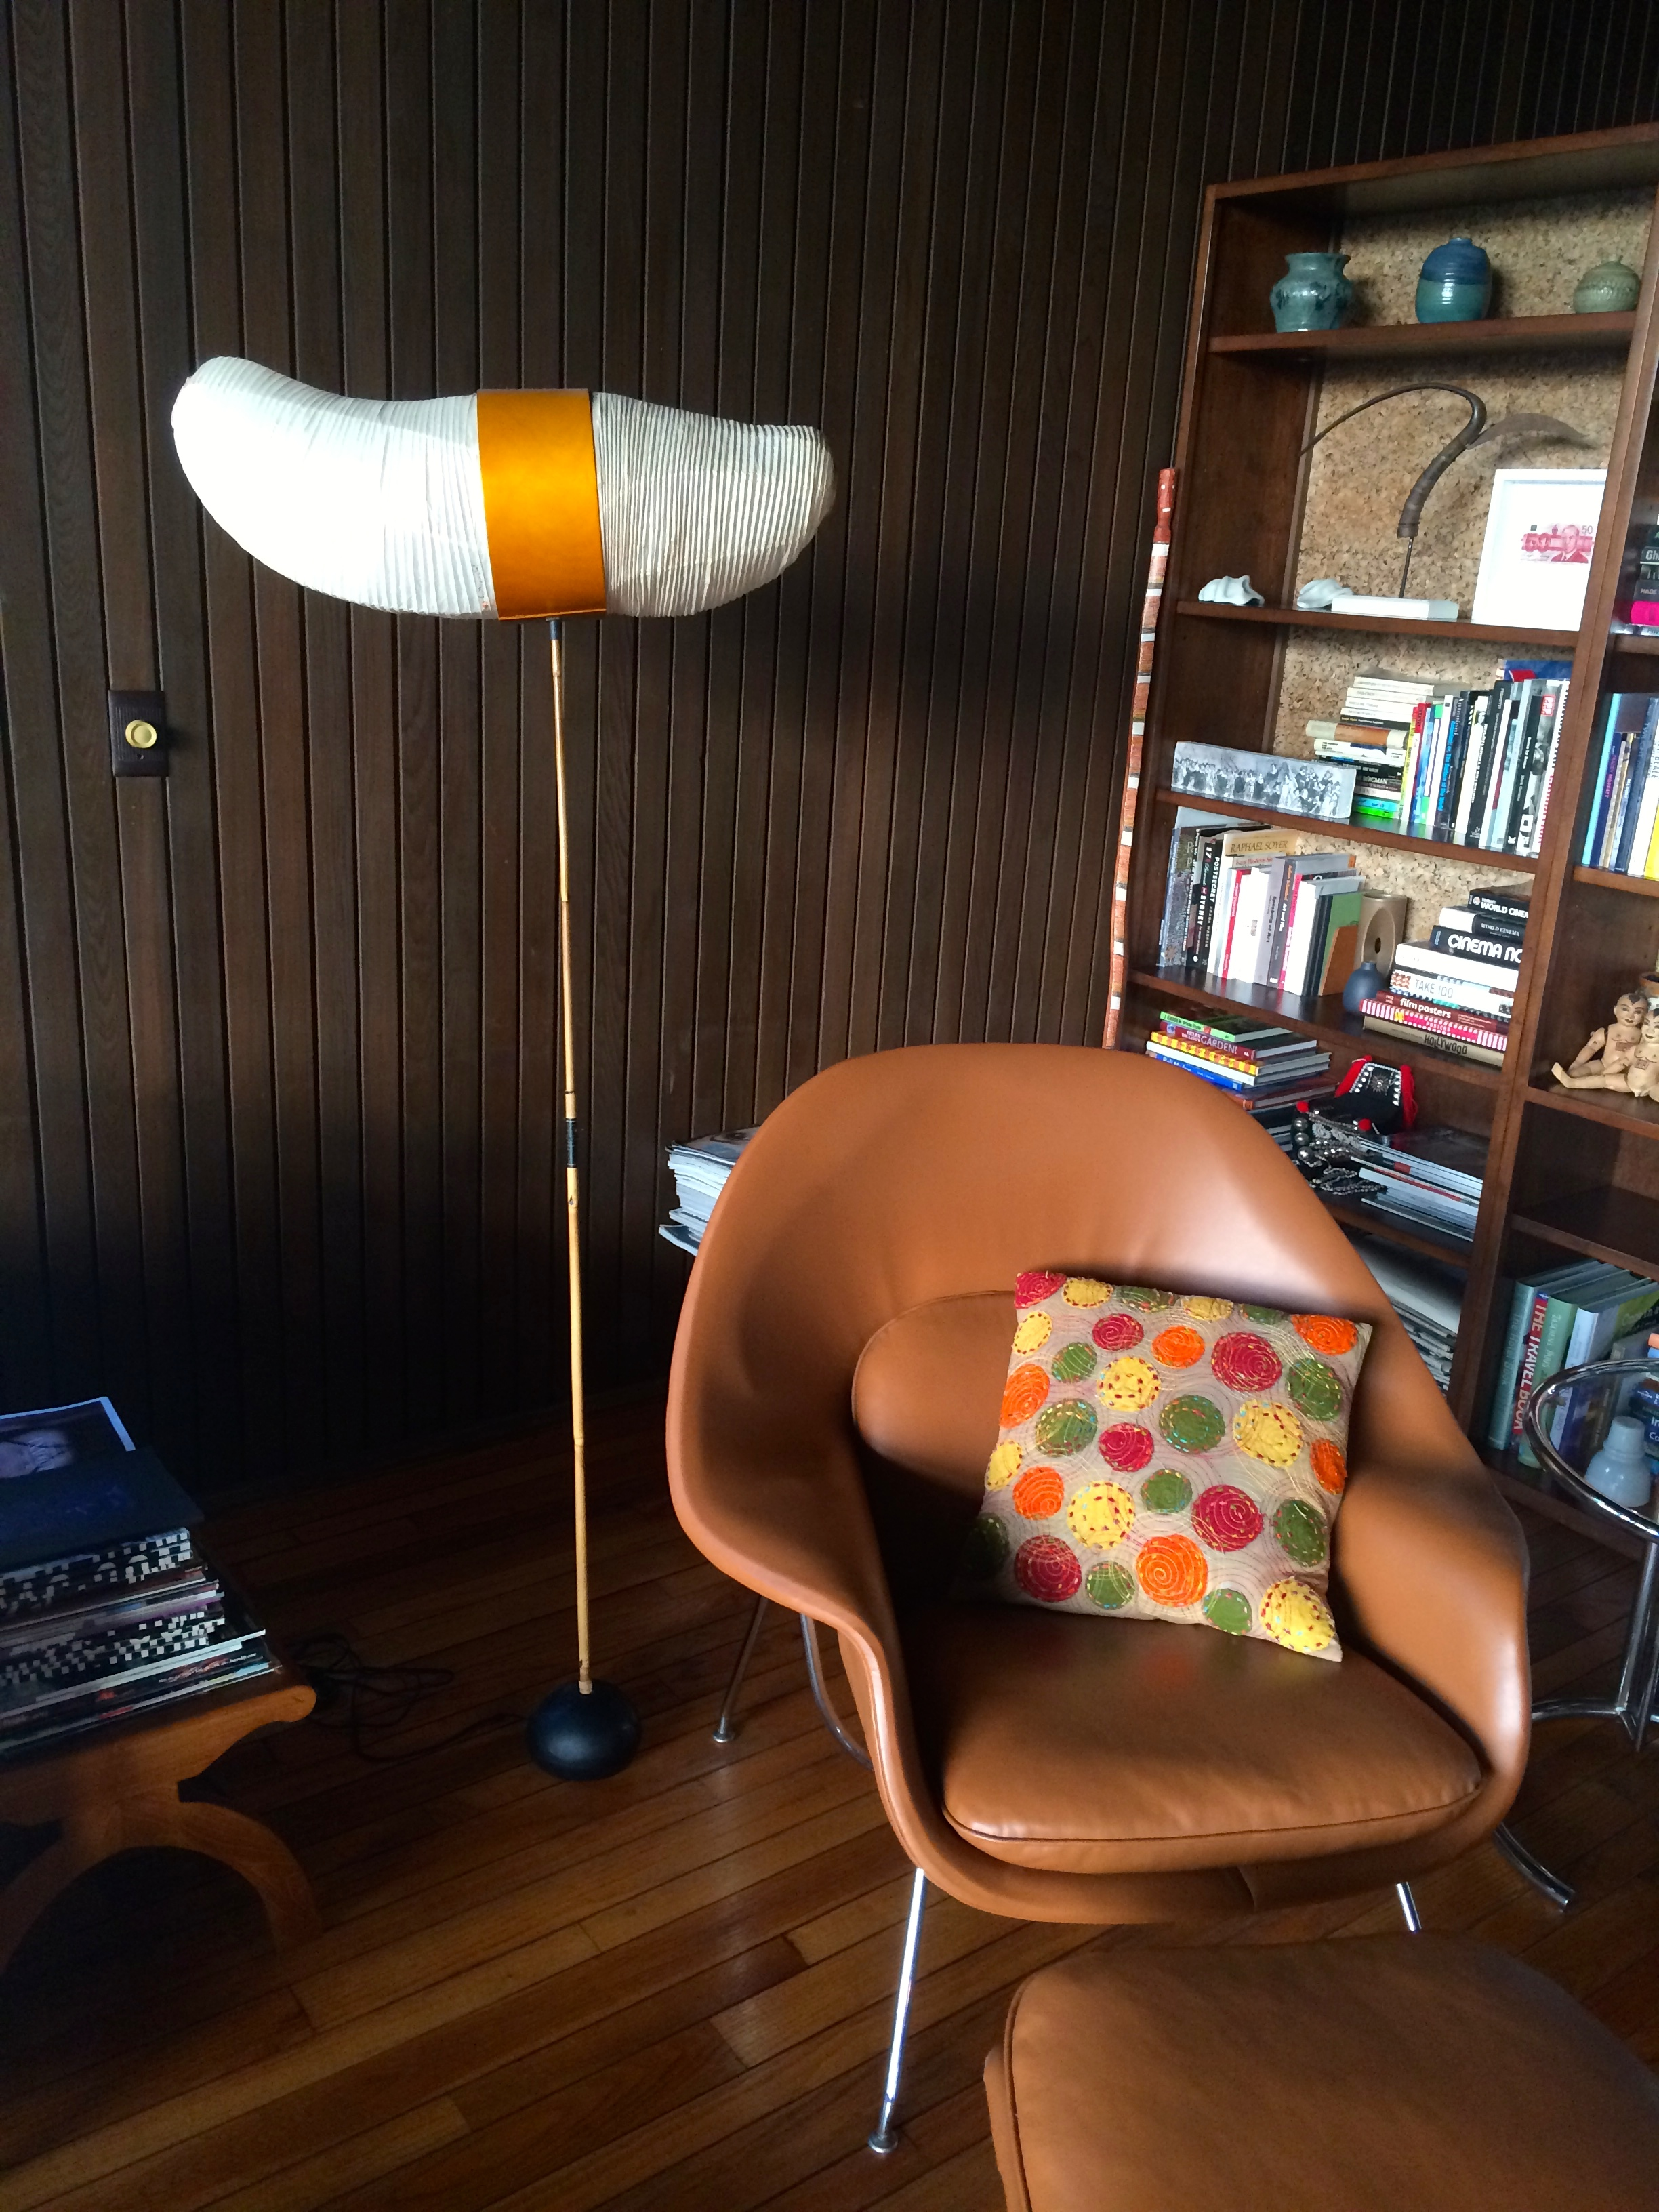 The lamp is from Rachel Griffith's character Brenda's apartment on Six Feet Under